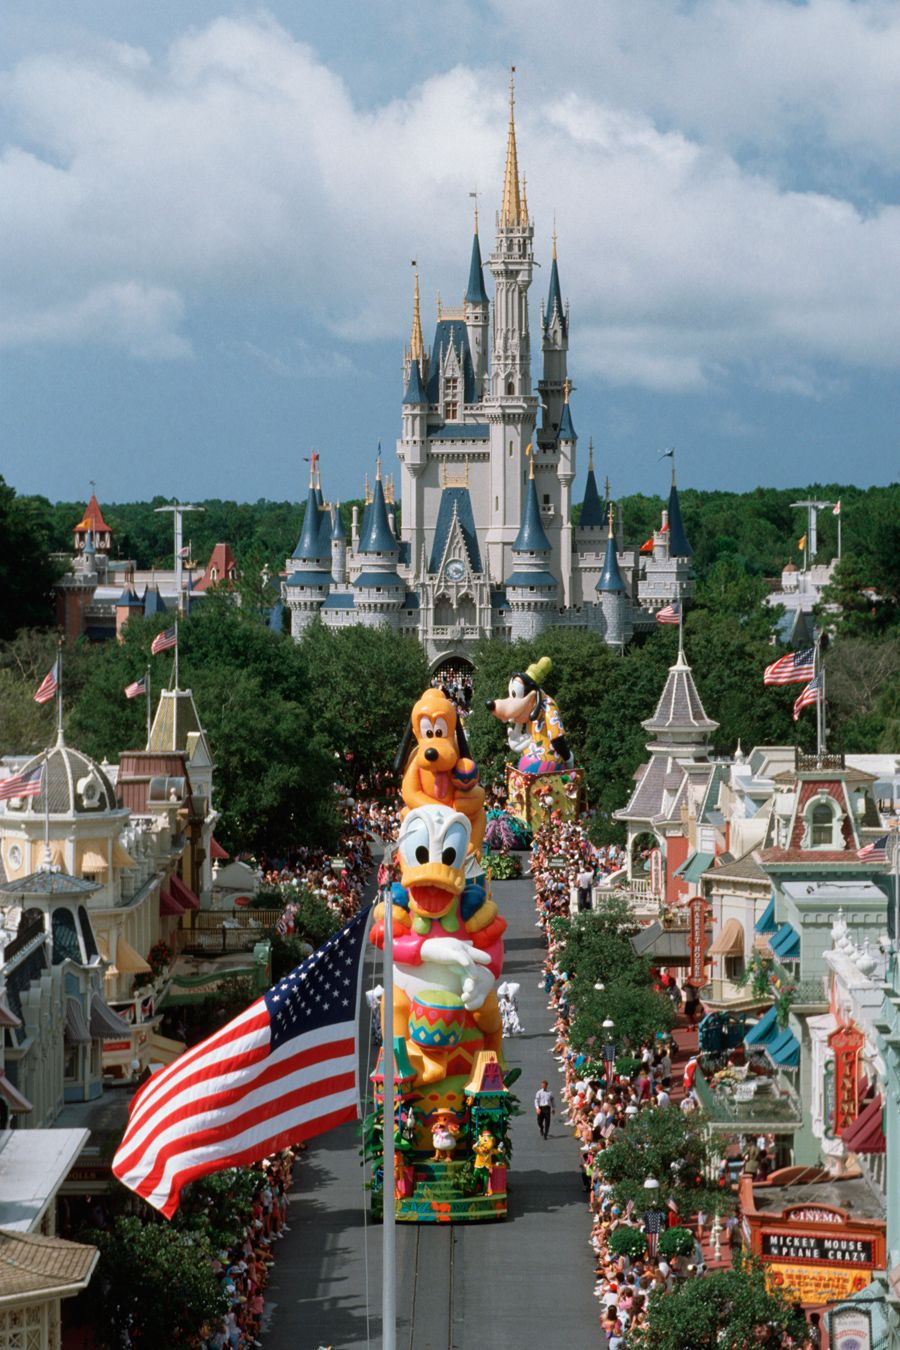 Disney 20 years ago. I remember this parade! I have photos